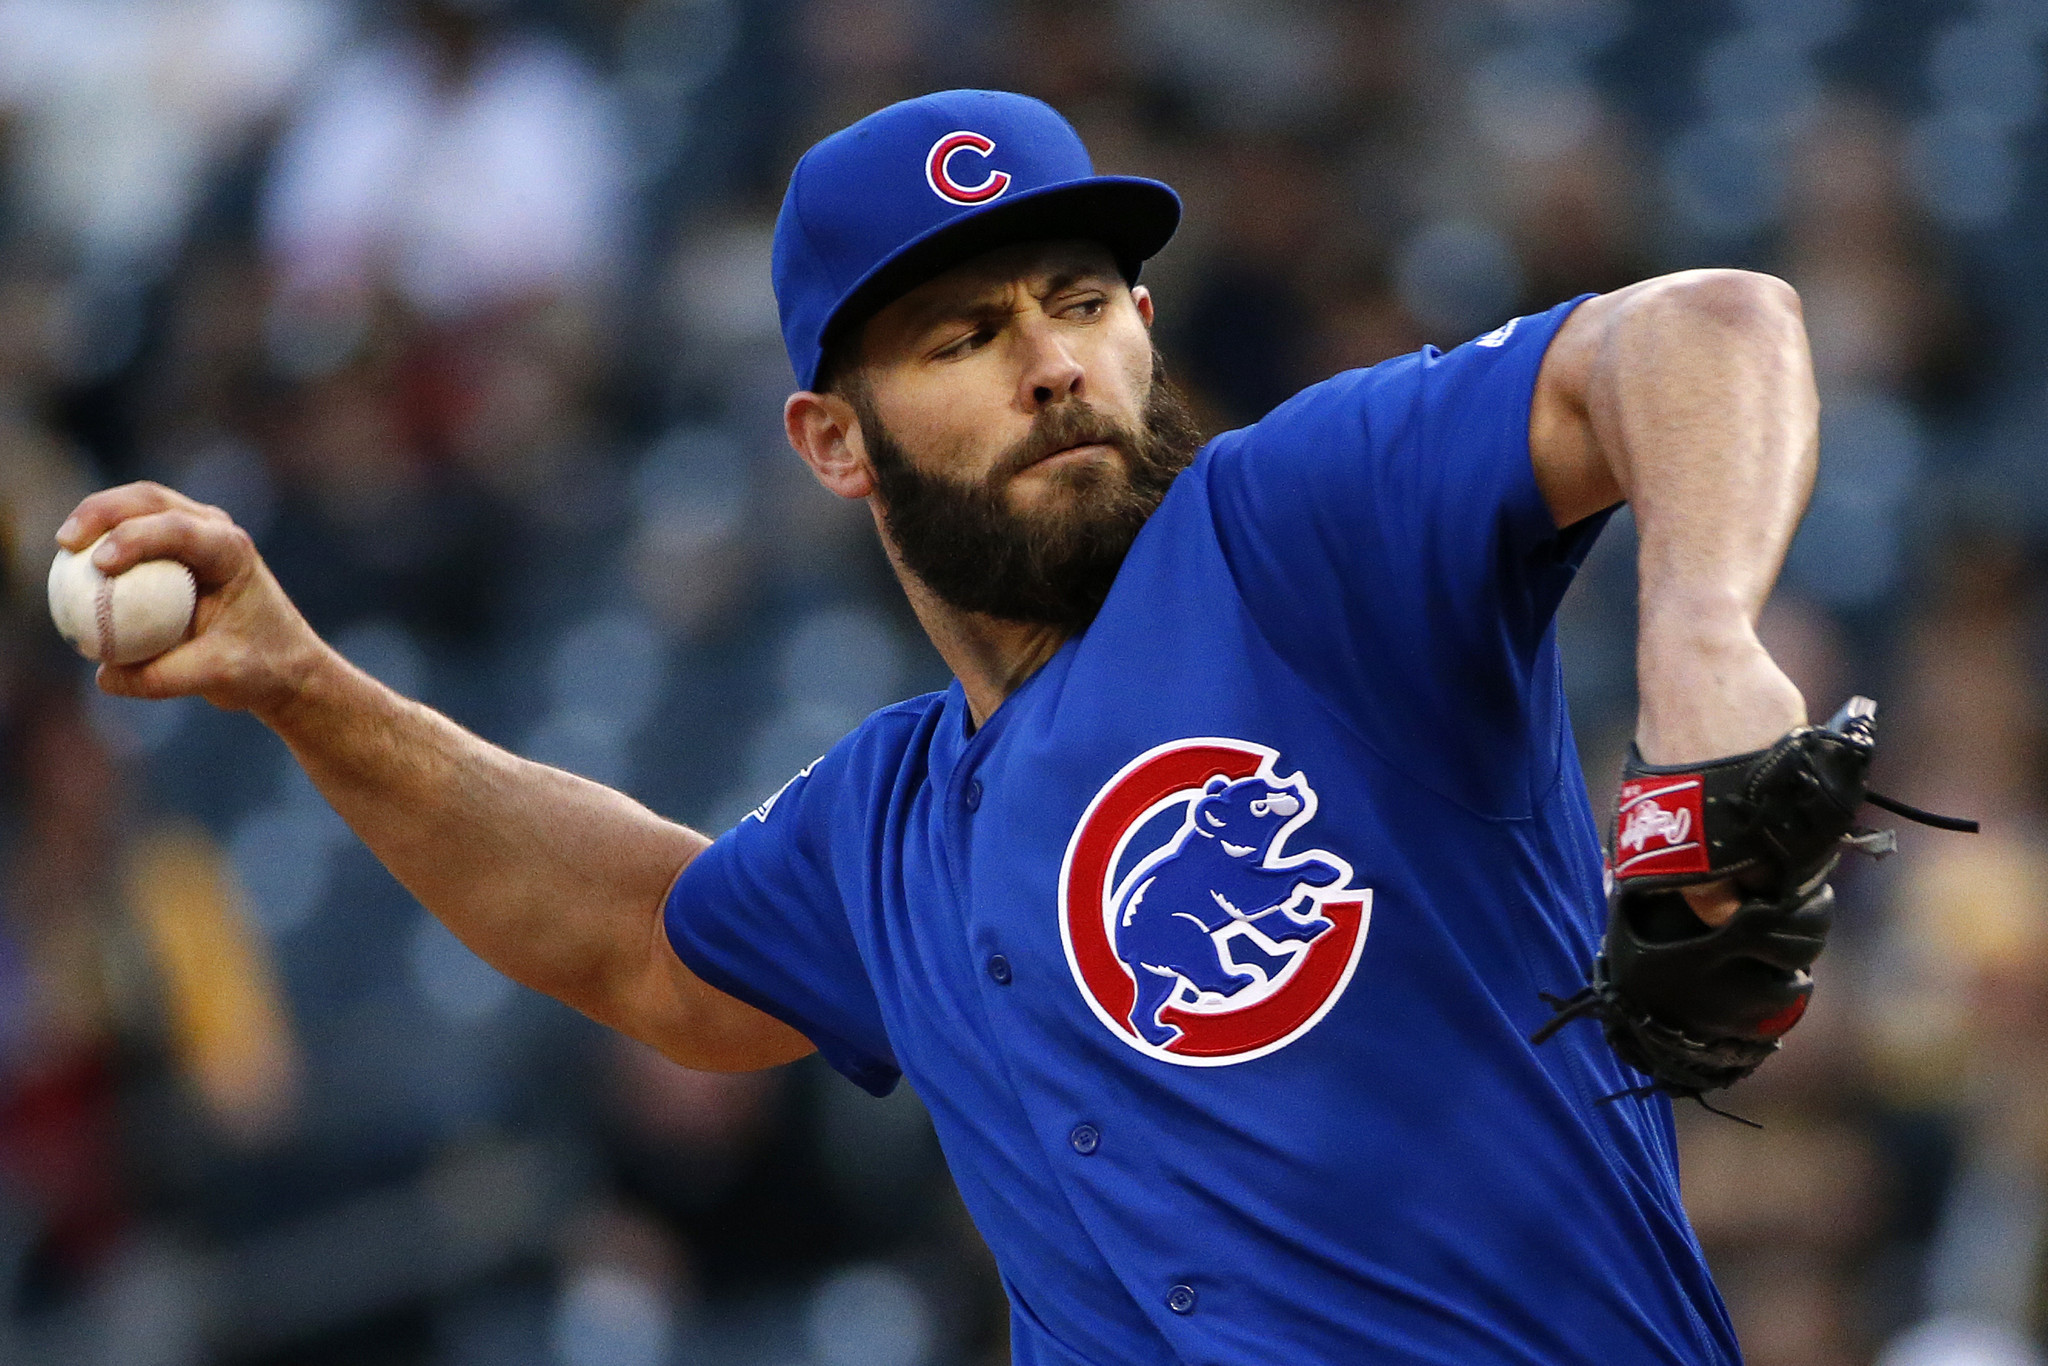 Ct-jake-arrieta-undefeated-cubs-pirates-spt-0504-20160503